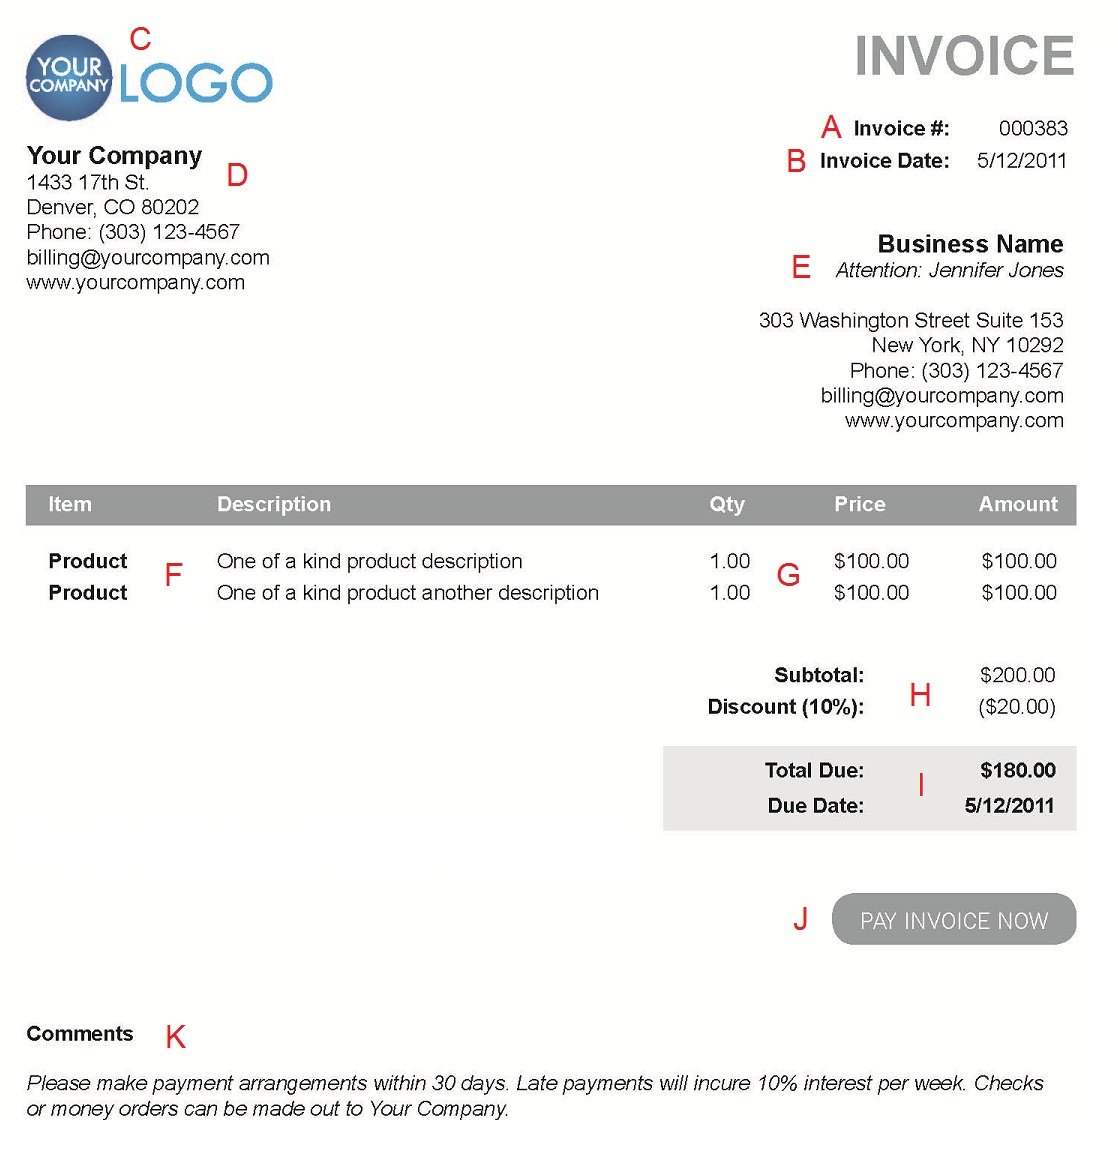 Coolmathgamesus  Sweet The  Different Sections Of An Electronic Payment Invoice With Glamorous A  With Endearing Free Sales Invoice Template Also Sell Invoices In Addition Office Invoice And Freight Invoices As Well As Pay Invoices Online Additionally Invoices Printing From Paysimplecom With Coolmathgamesus  Glamorous The  Different Sections Of An Electronic Payment Invoice With Endearing A  And Sweet Free Sales Invoice Template Also Sell Invoices In Addition Office Invoice From Paysimplecom